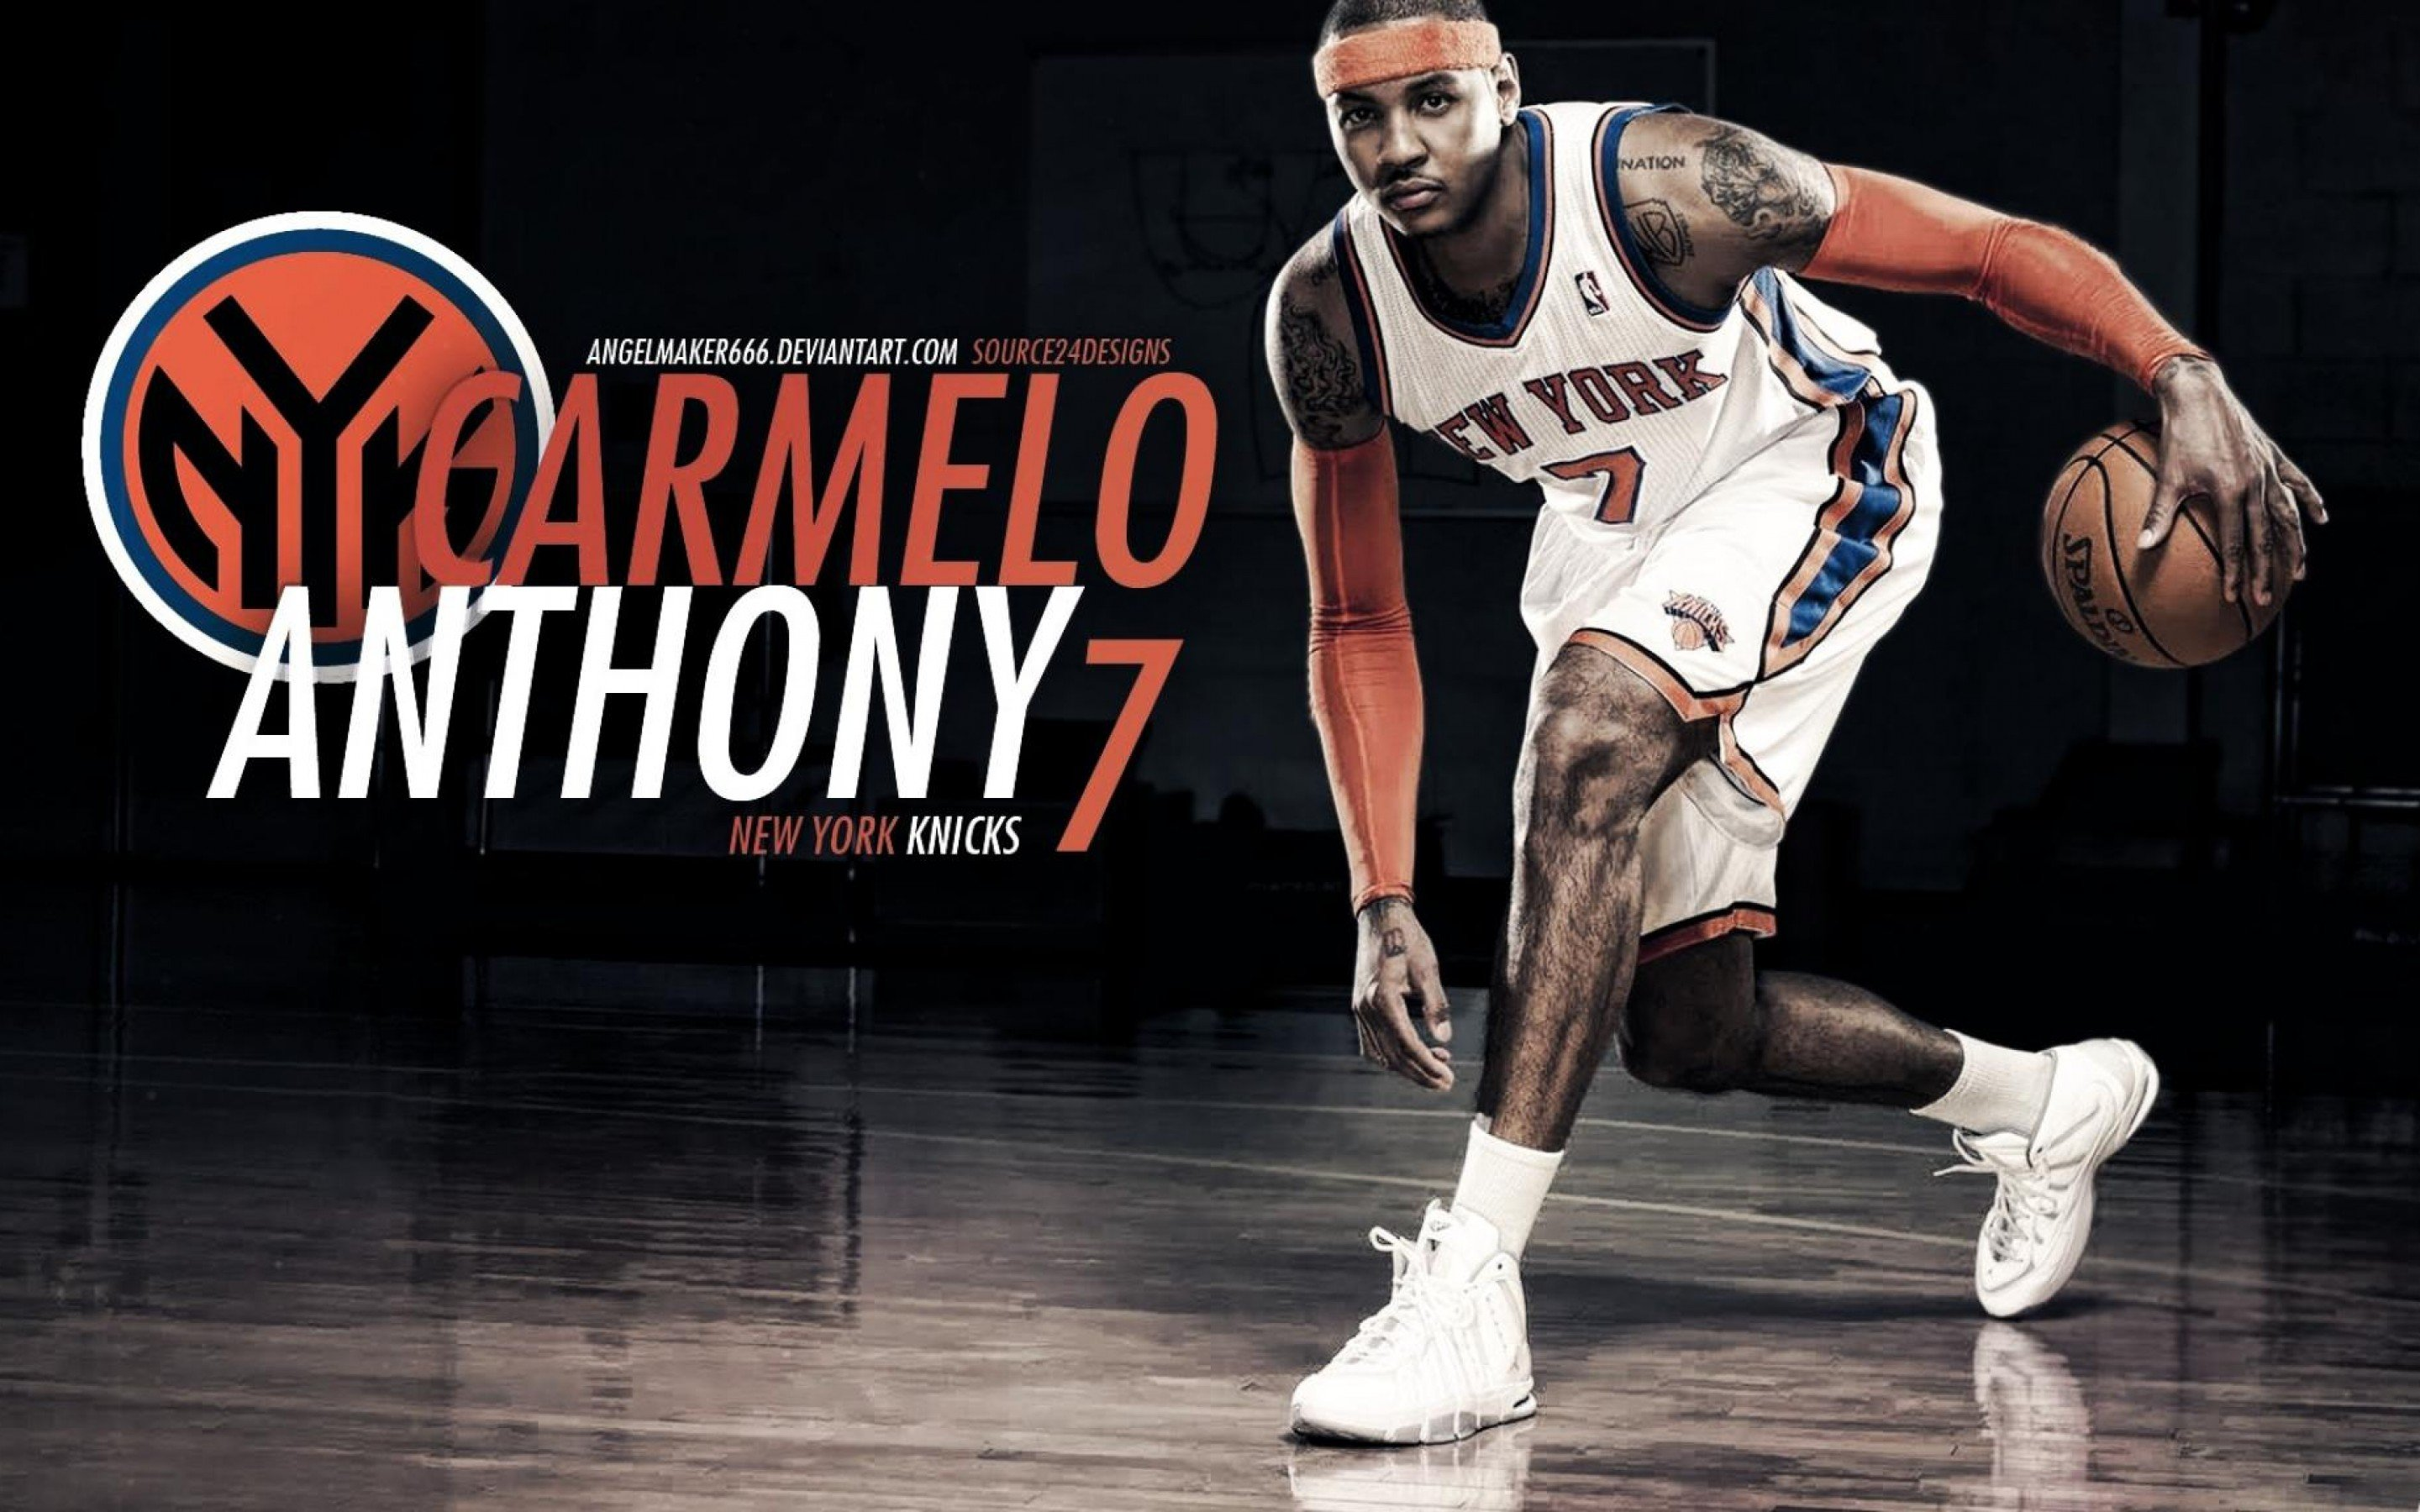 carmelo anthony quotes life - photo #31